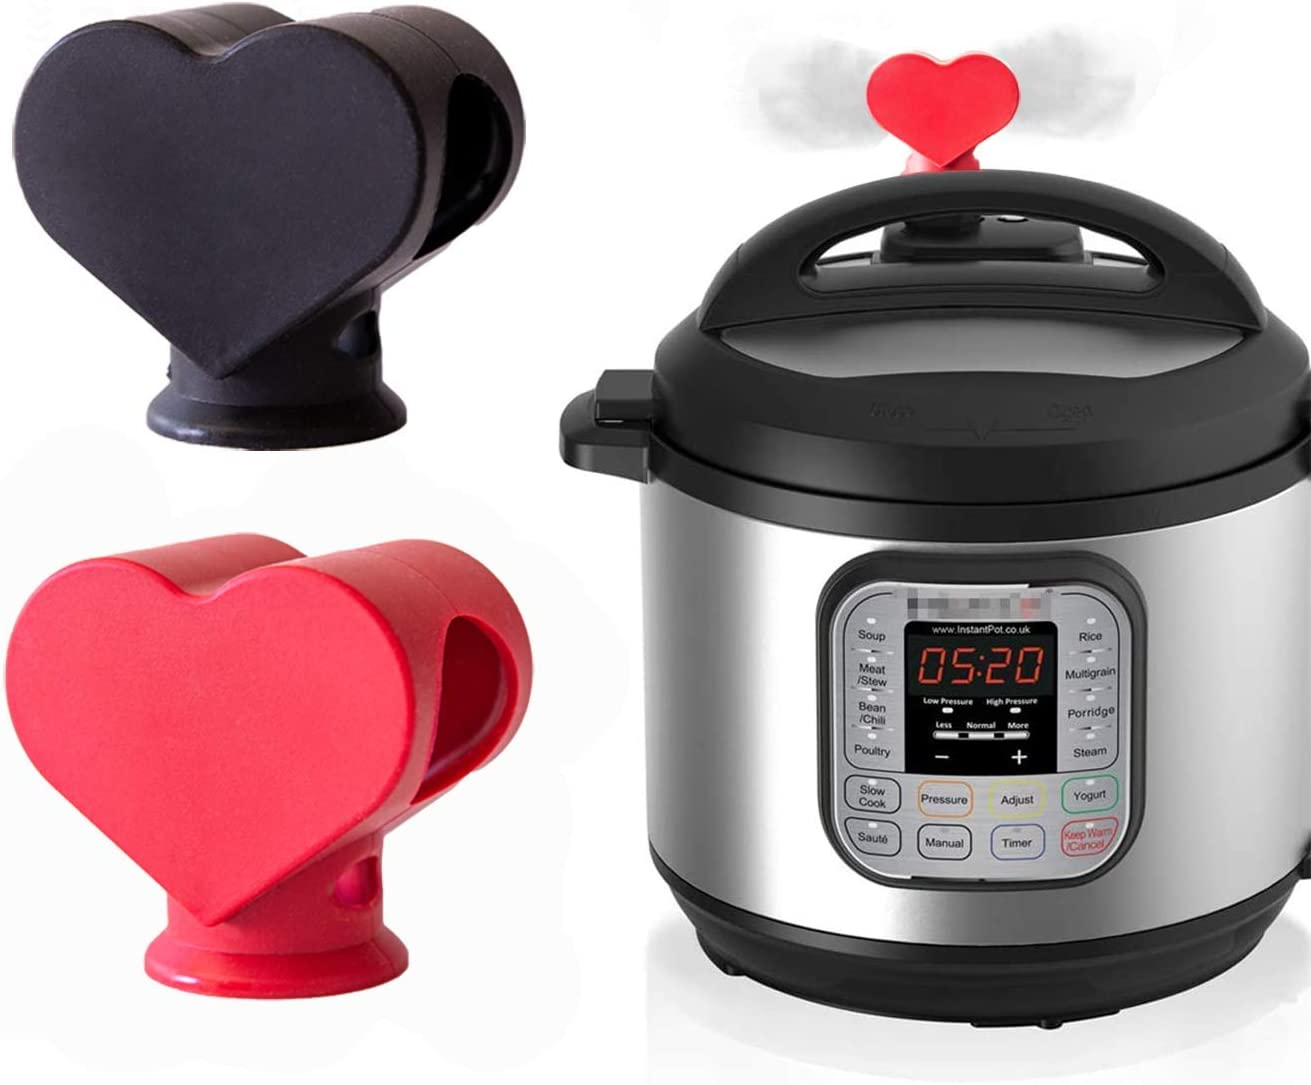 Renue - Heart Shaped Silicone Steam Release Diverter Accessory - Compatible With Instant Pot Duo/Duo Plus/and Other Models | Divert Moisture Away from Cabinets and Walls (Red)